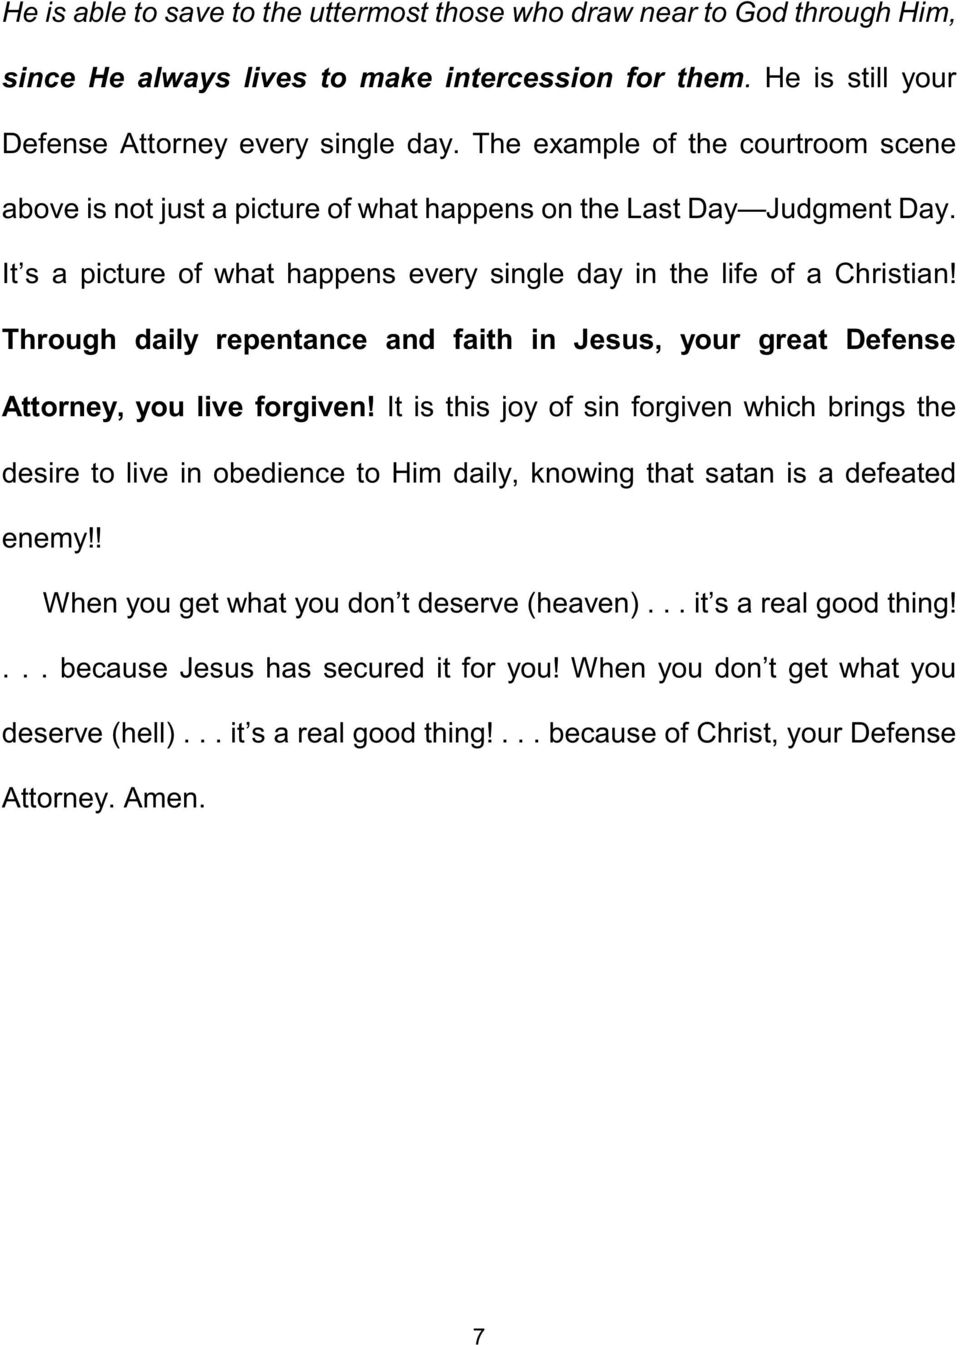 Through daily repentance and faith in Jesus, your great Defense Attorney, you live forgiven!